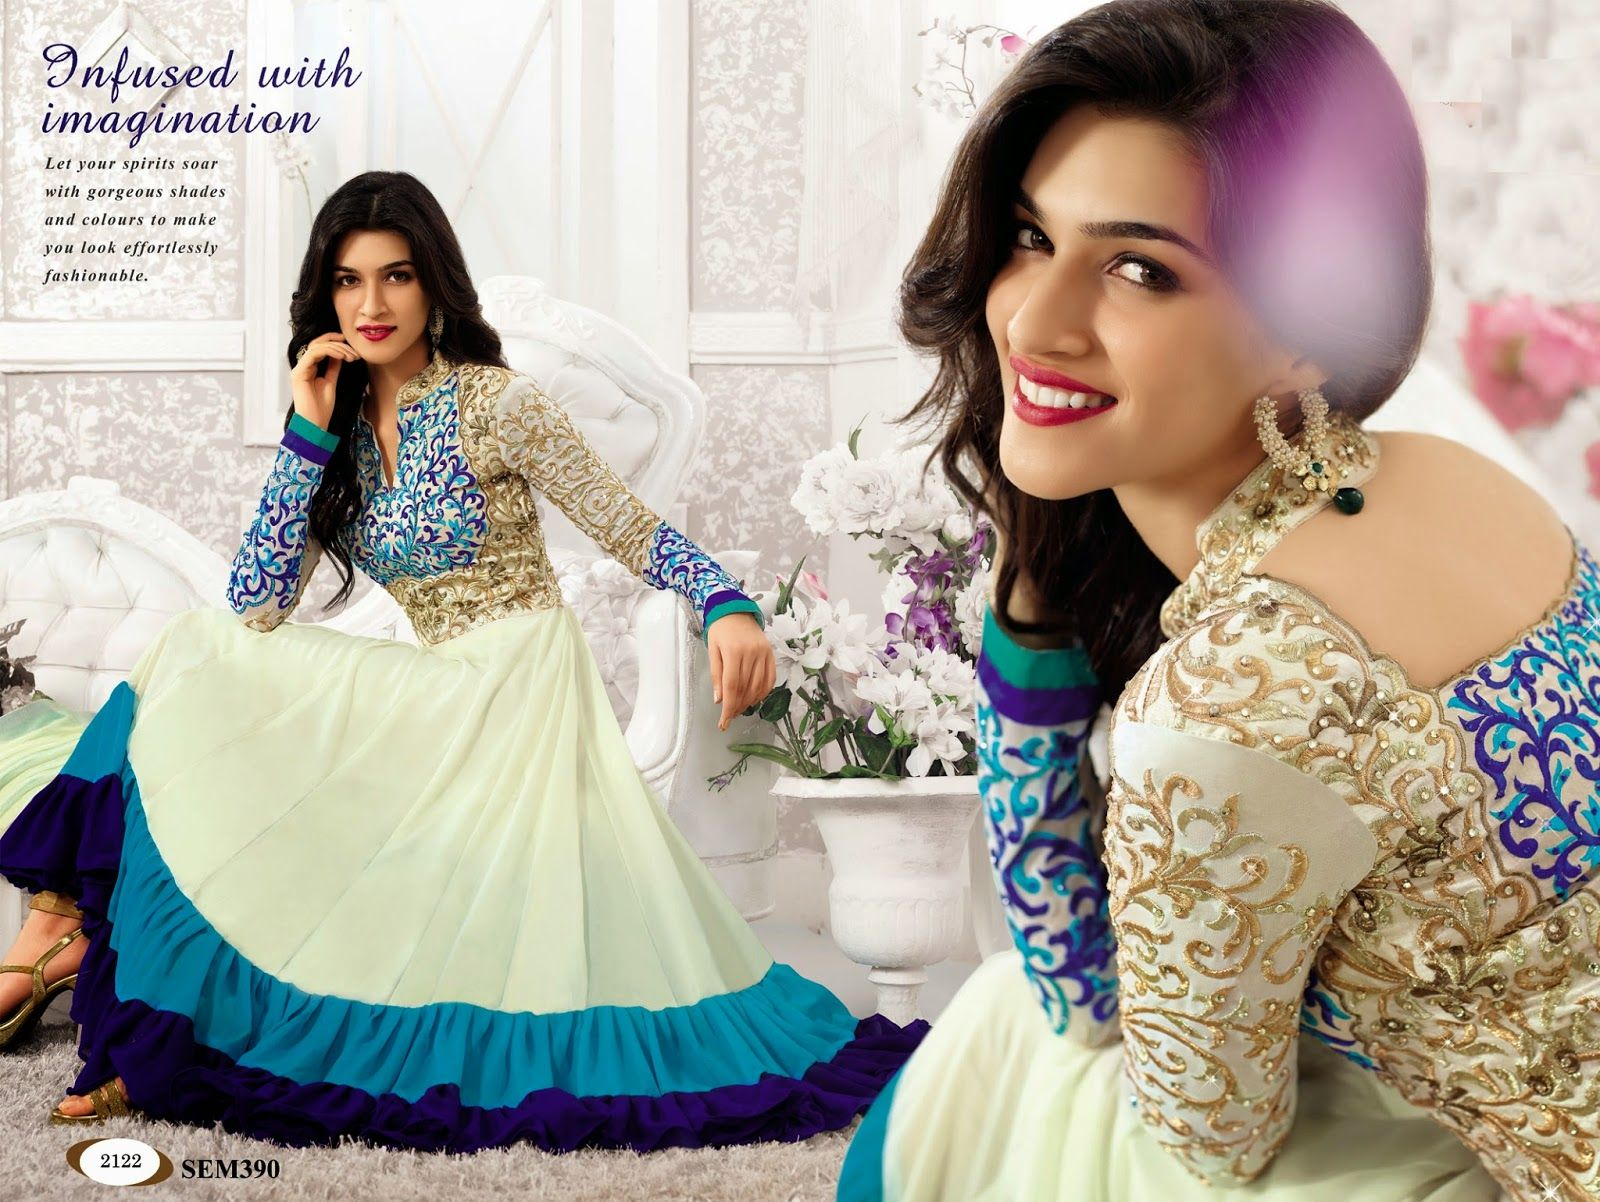 Pin by doshbish on products pinterest products suits and parties